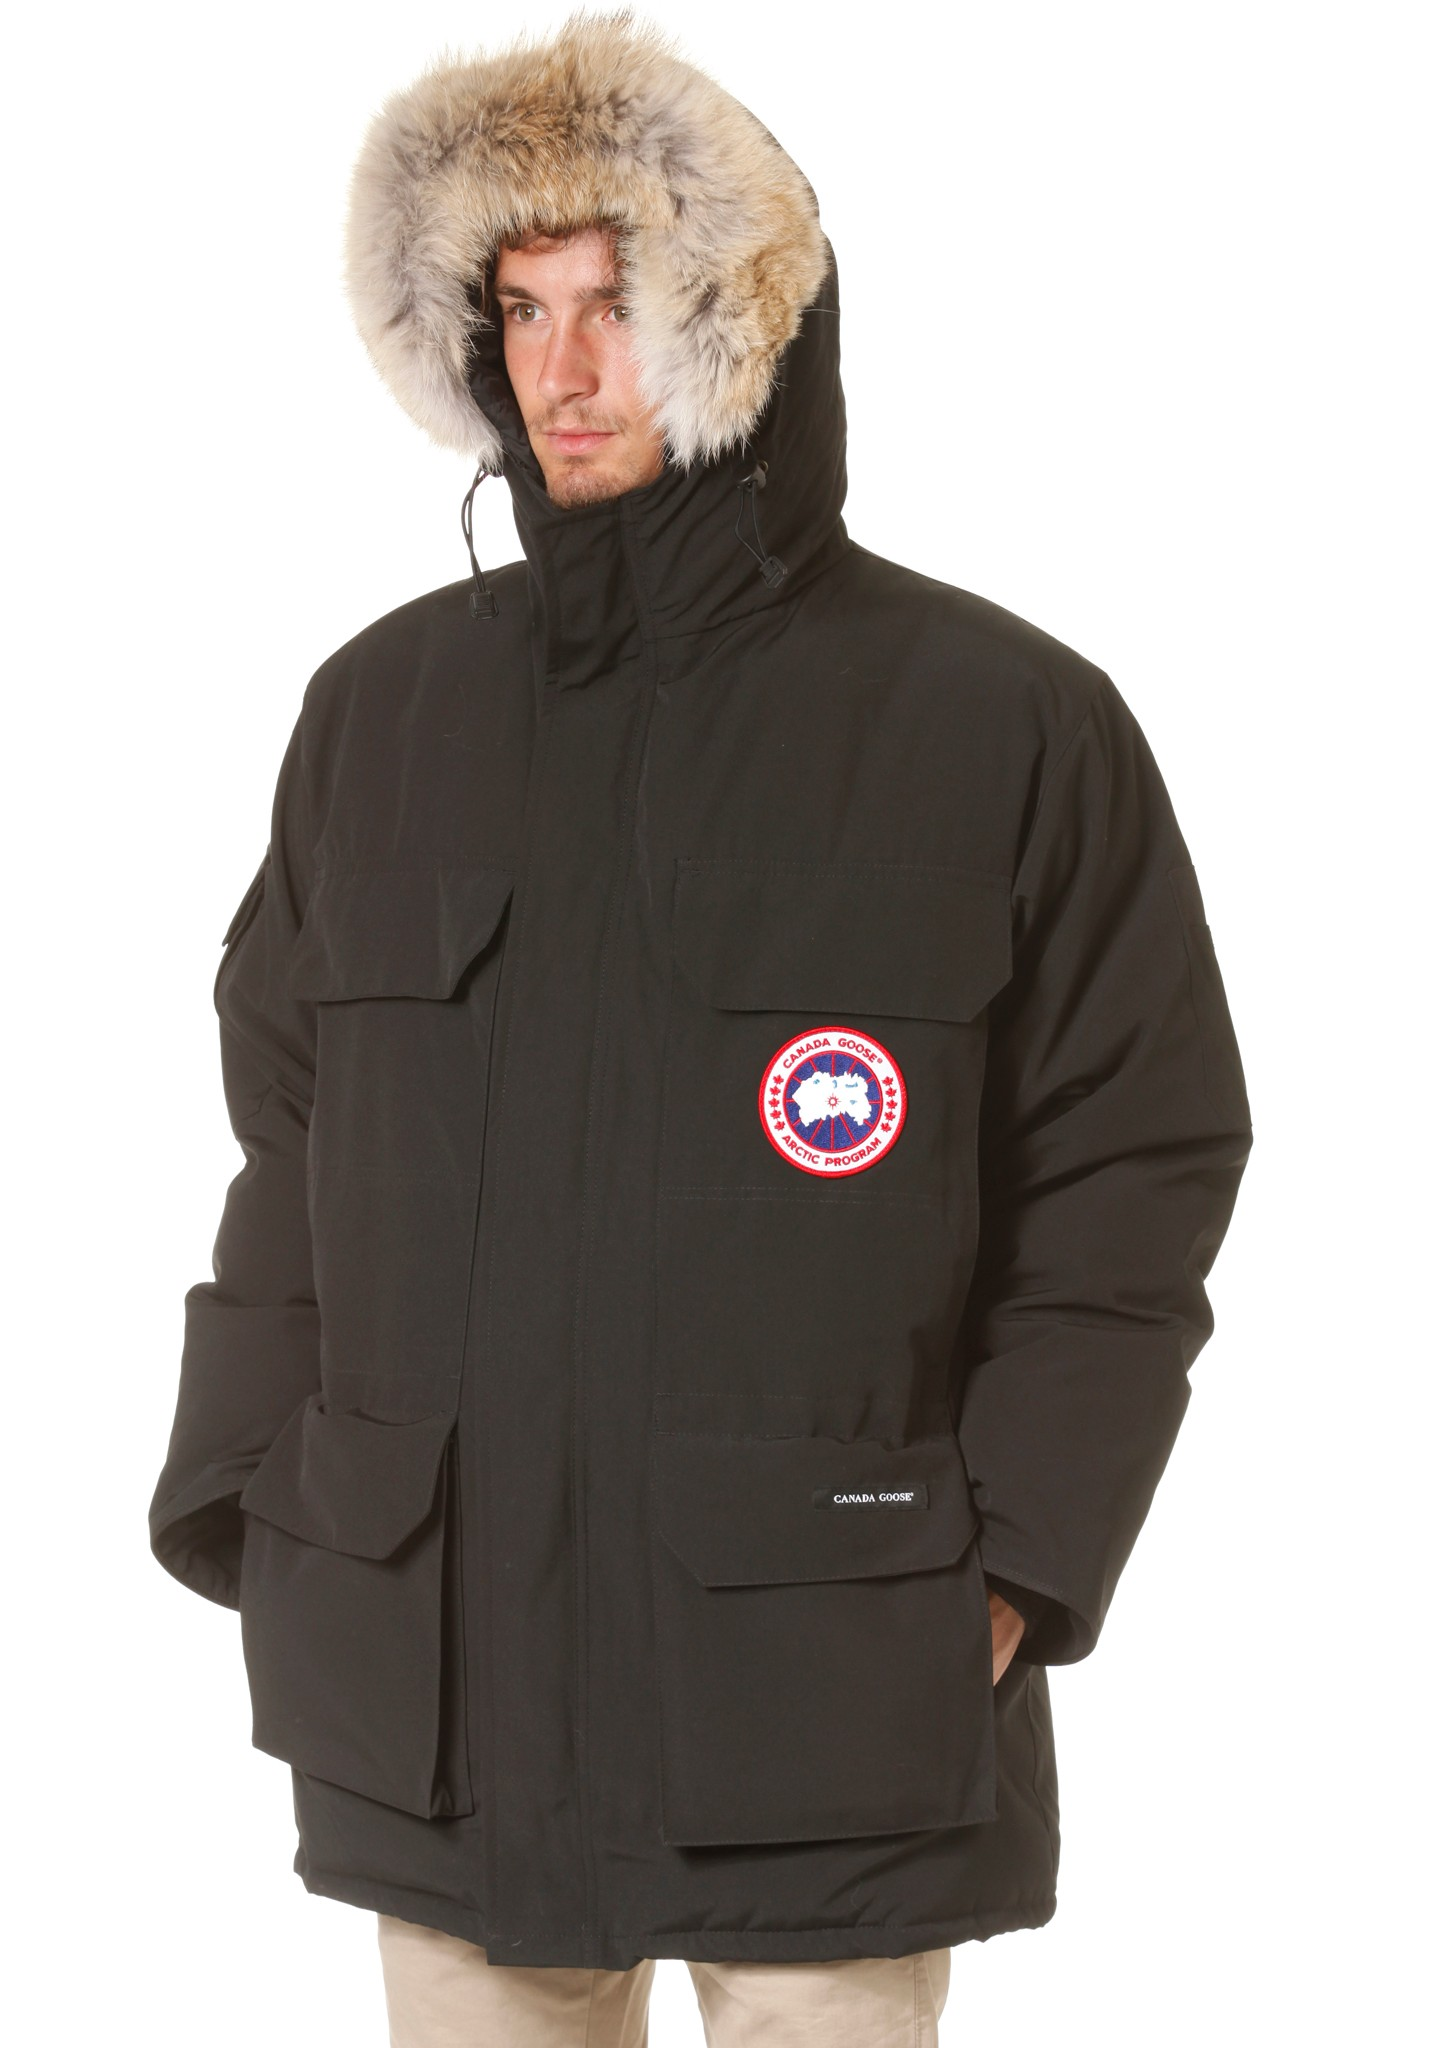 neu canada goose expedition herren funktionsjacke ebay. Black Bedroom Furniture Sets. Home Design Ideas